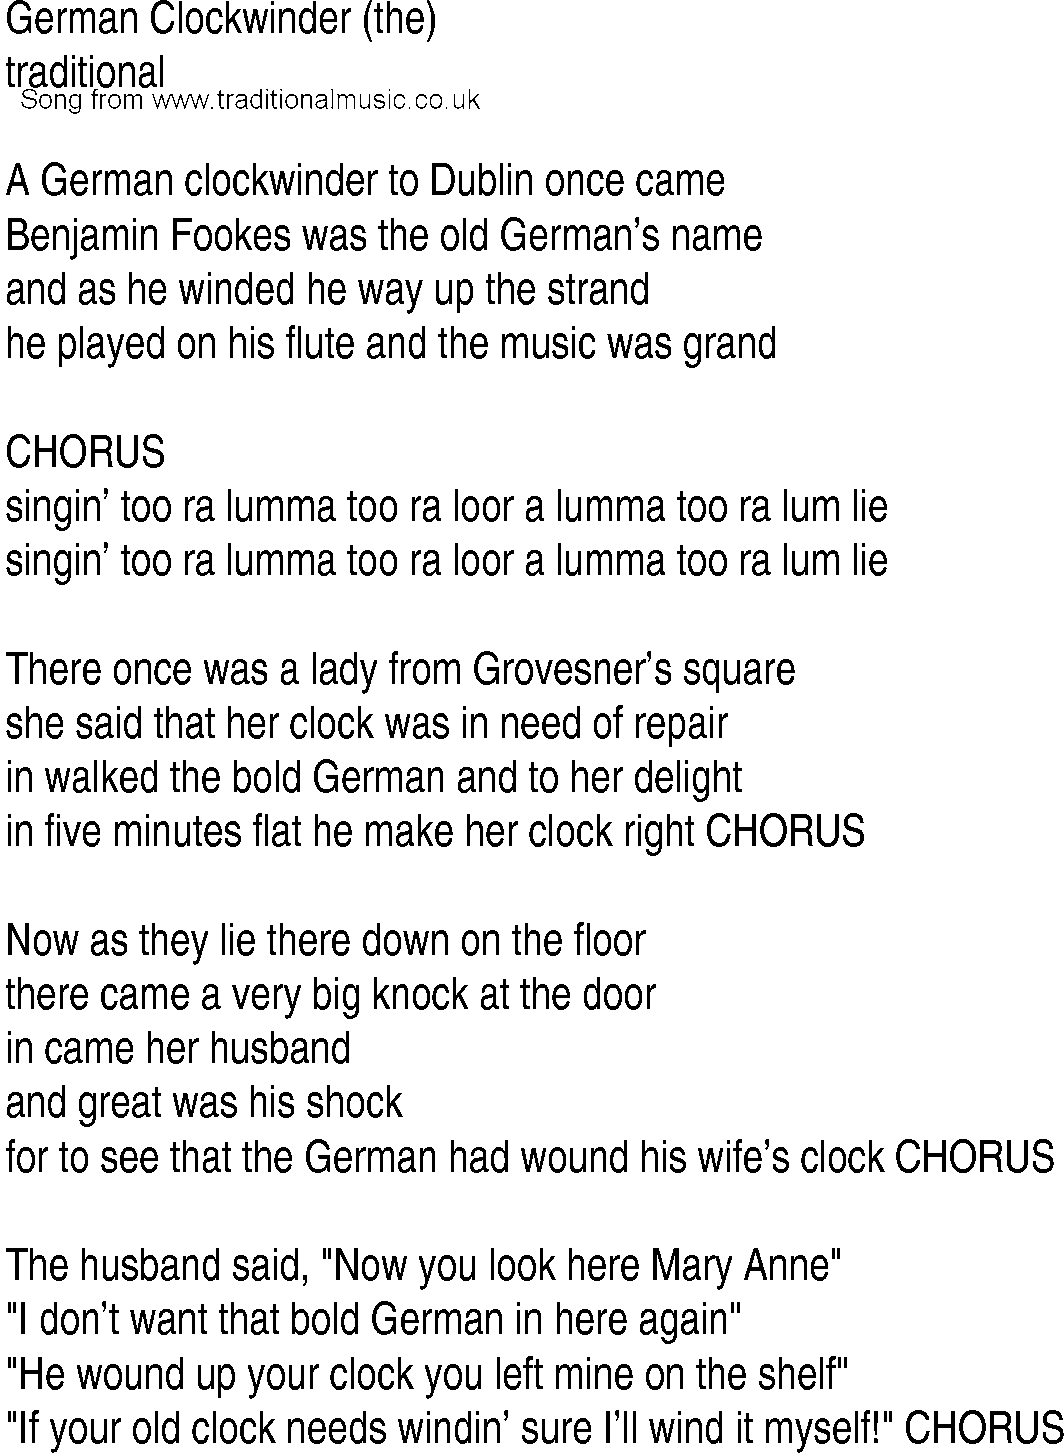 Irish Music, Song and Ballad Lyrics for: German Clockwinder